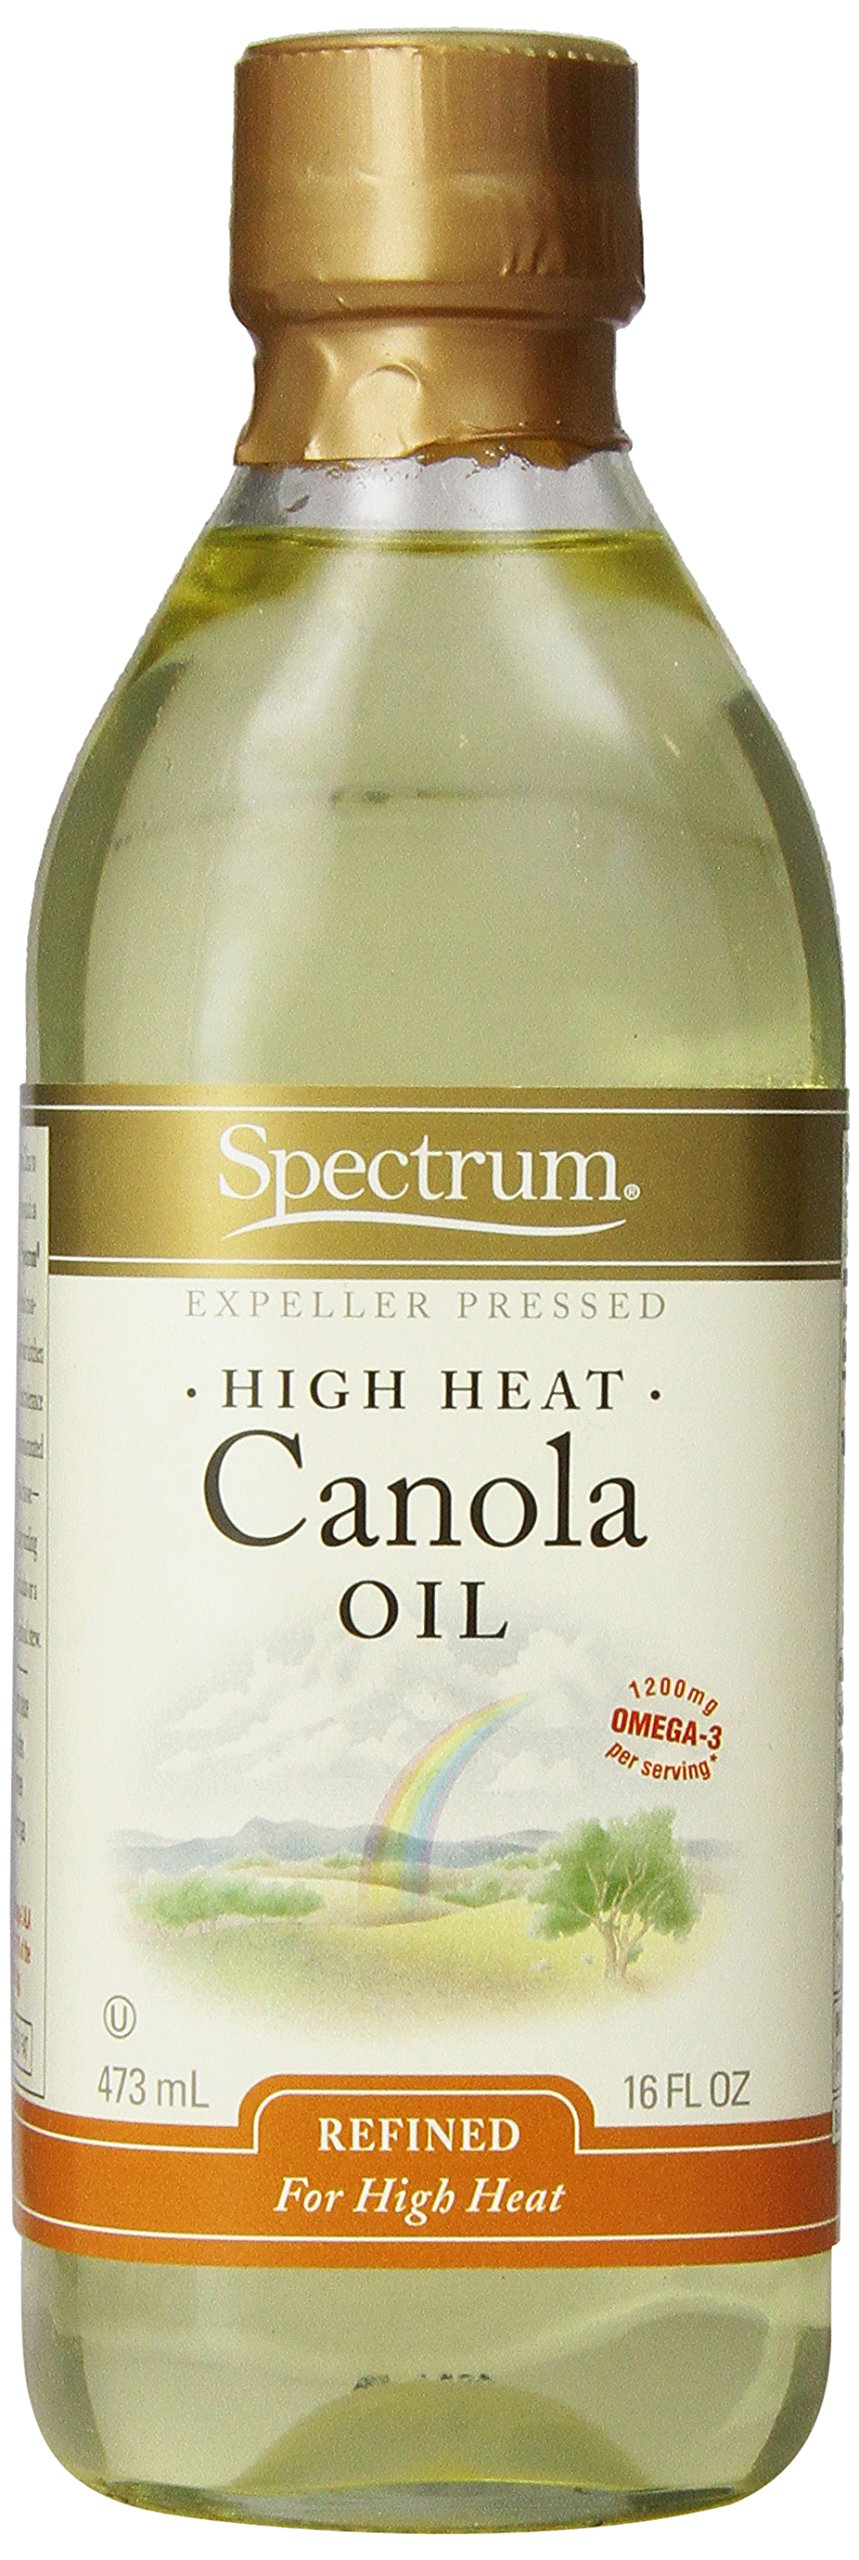 Spectrum, Canola Oil, 16 oz